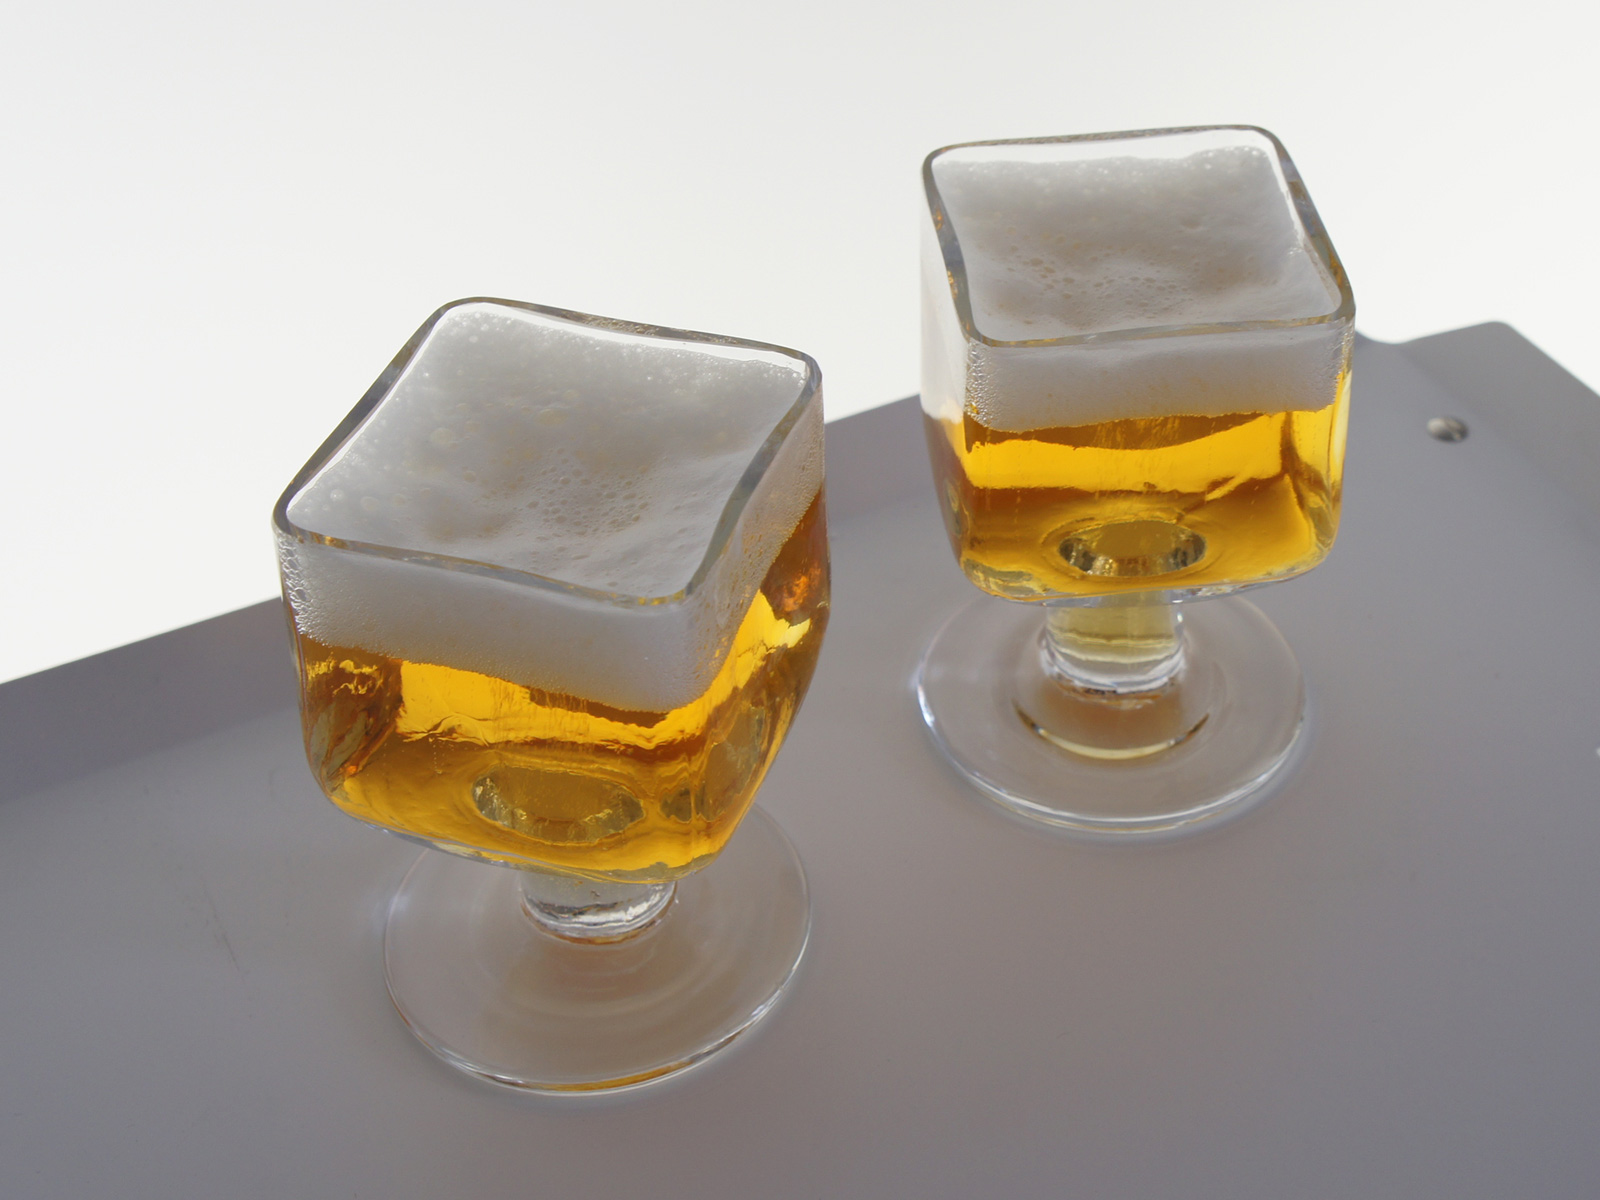 Cubit beer glass